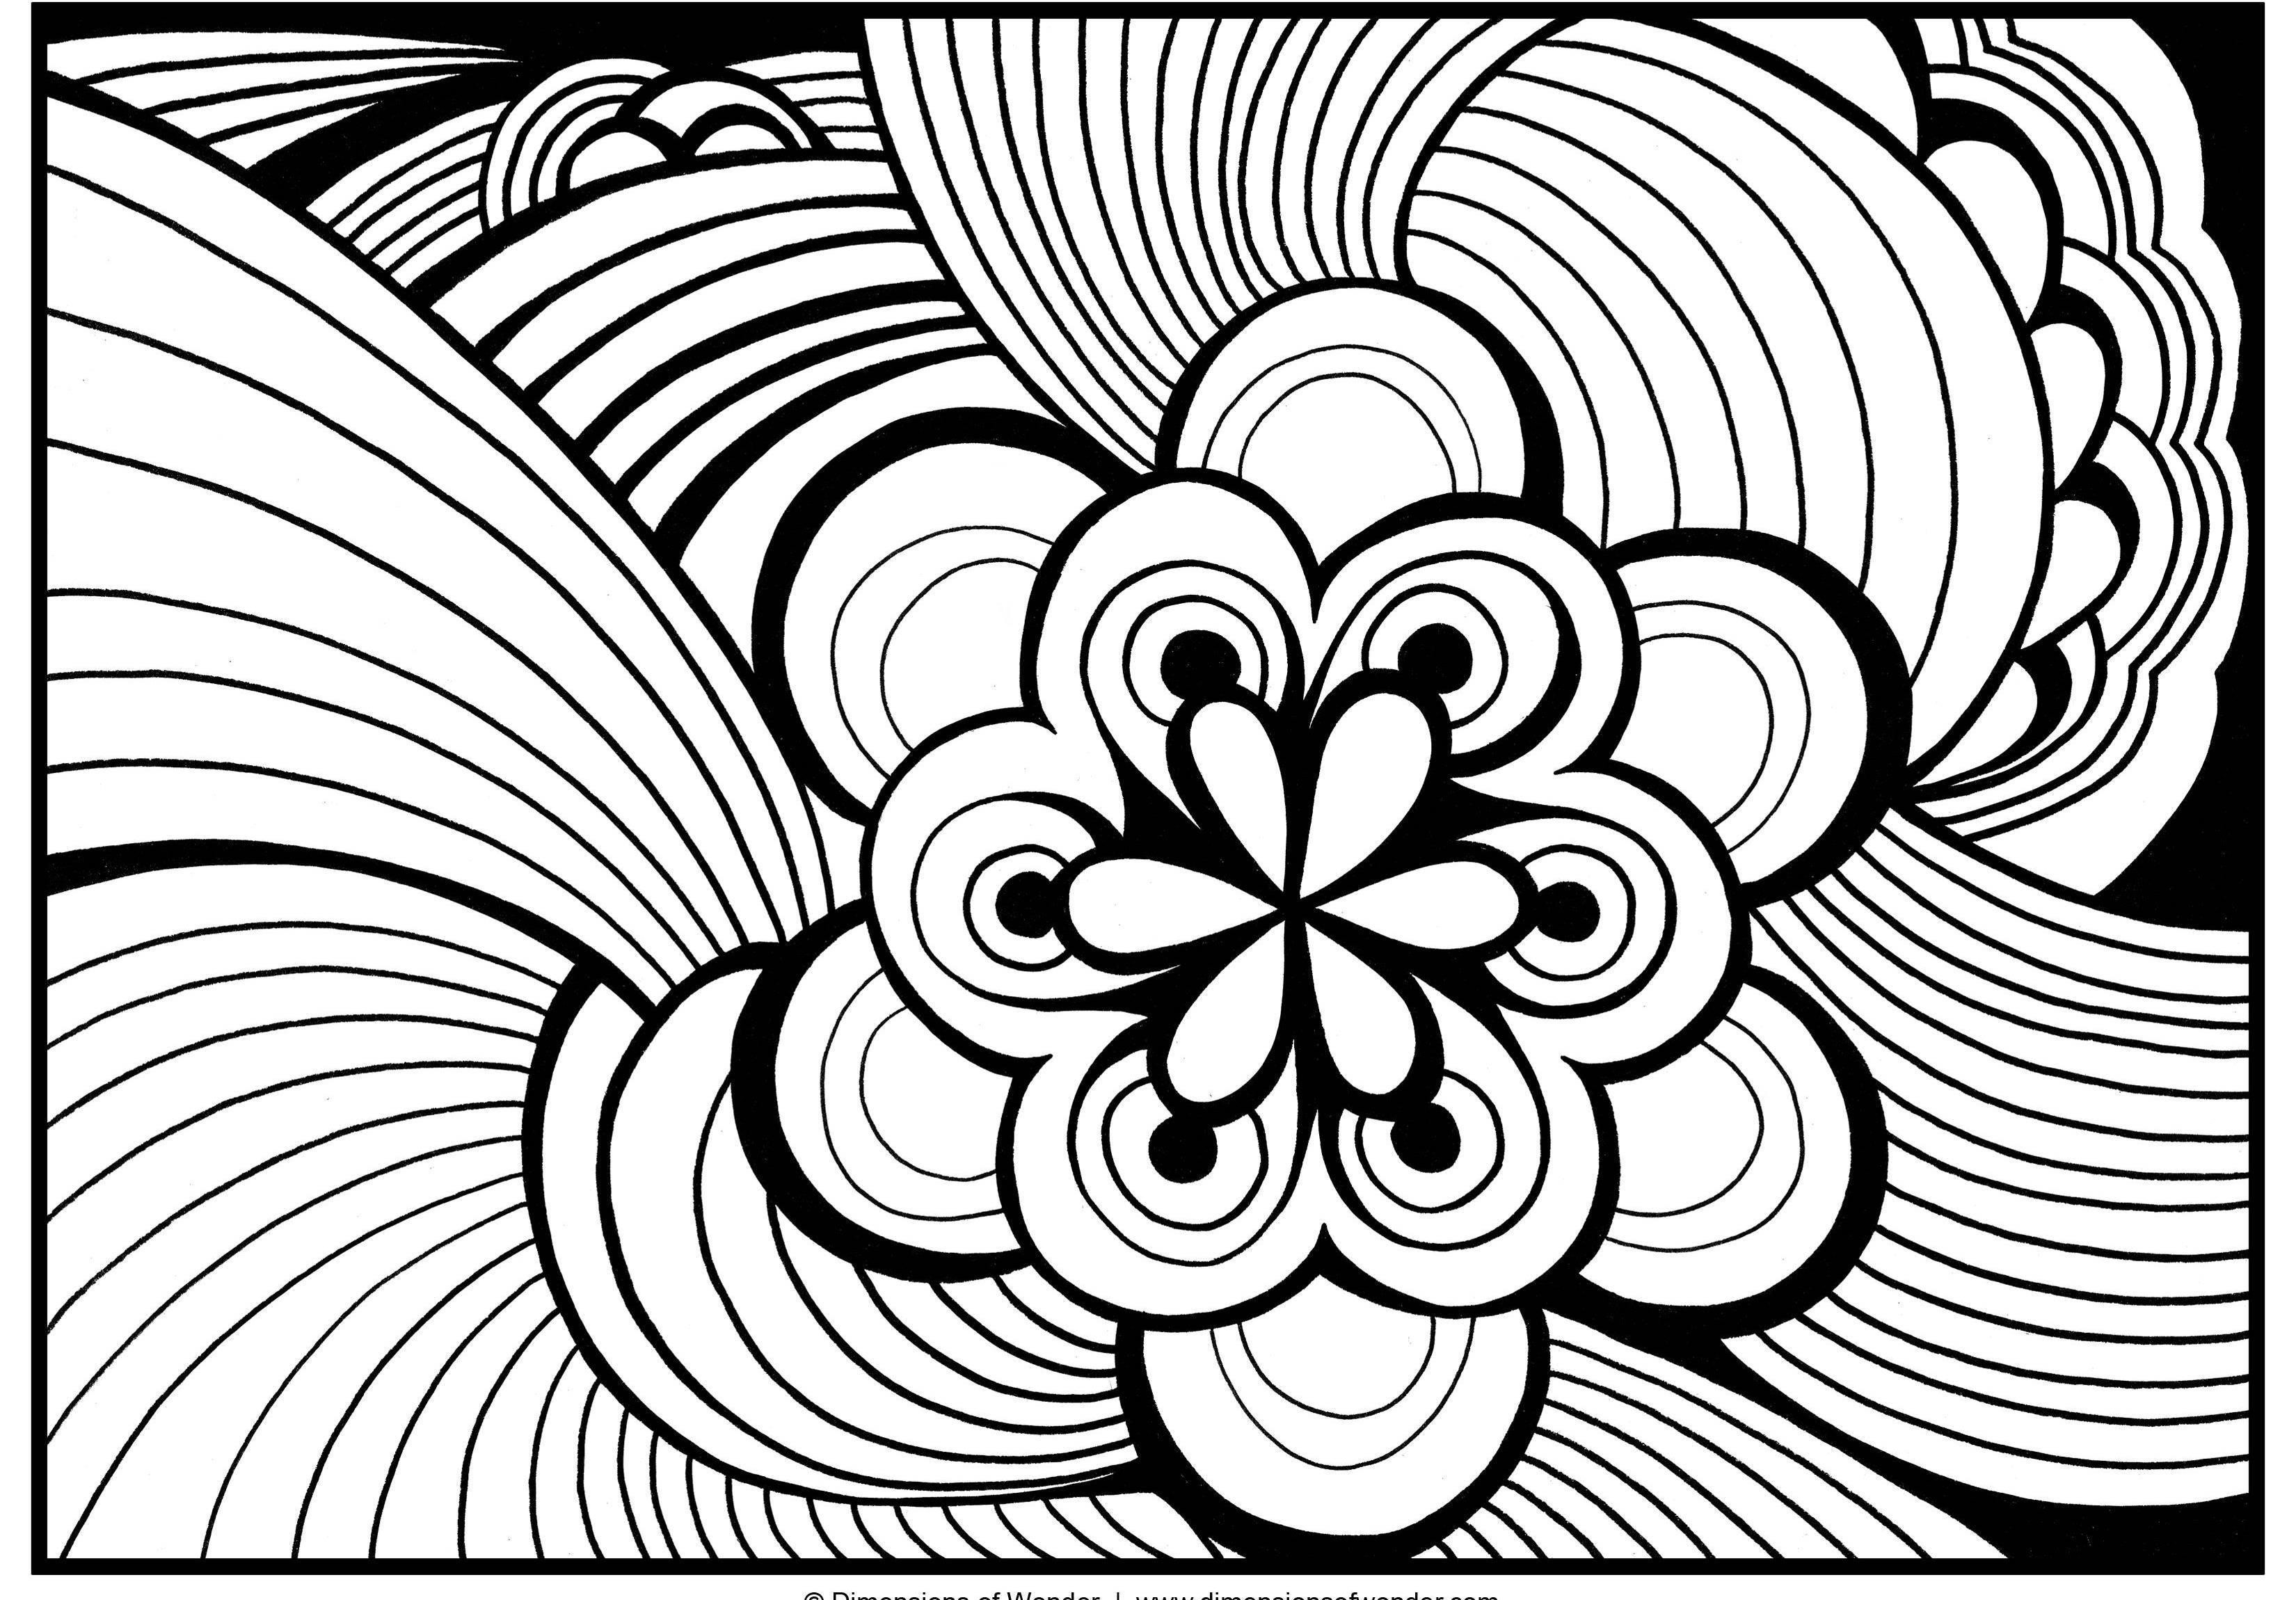 Coloring Pages For Adults To Print  Free Printable to Color for Adults 51 Coloring